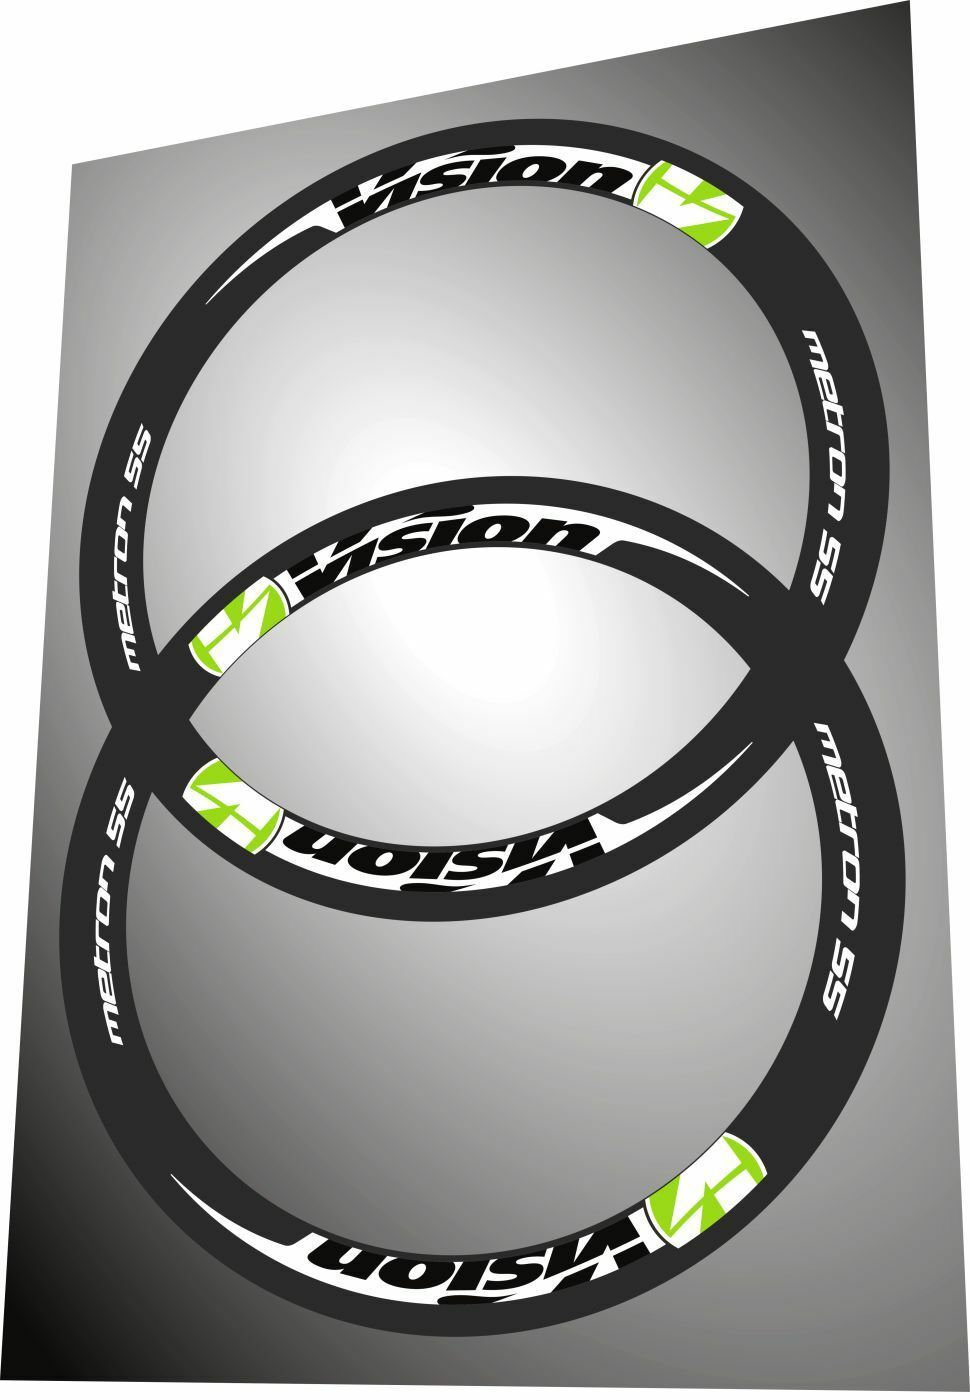 VISION METRON 55 LIME GREEN & WHITE COLOR REPLACEMENT  RIM DECAL SET FOR TWO RIMS  the lowest price